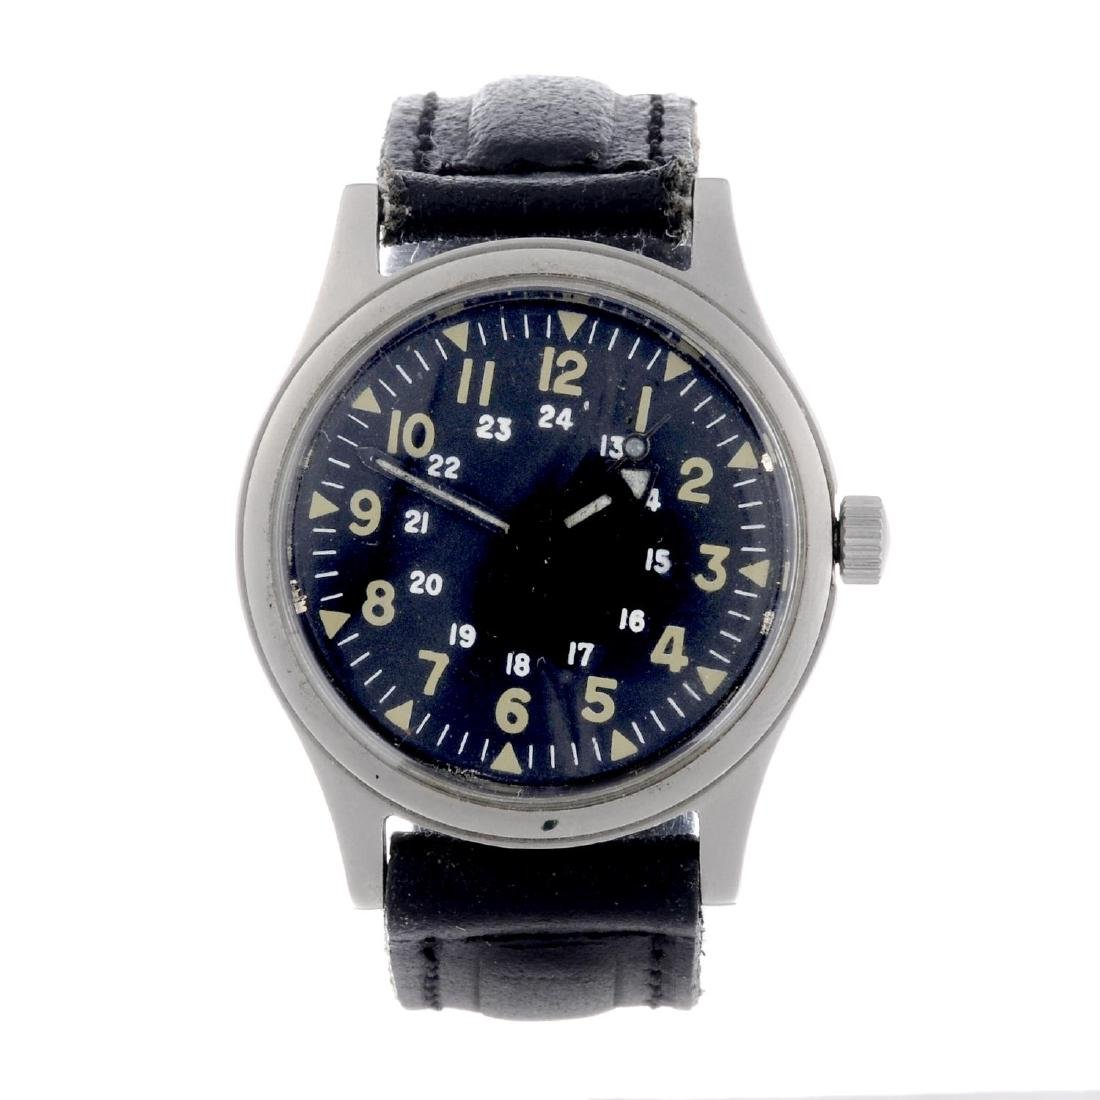 A military issue wrist watch. Stainless steel case.